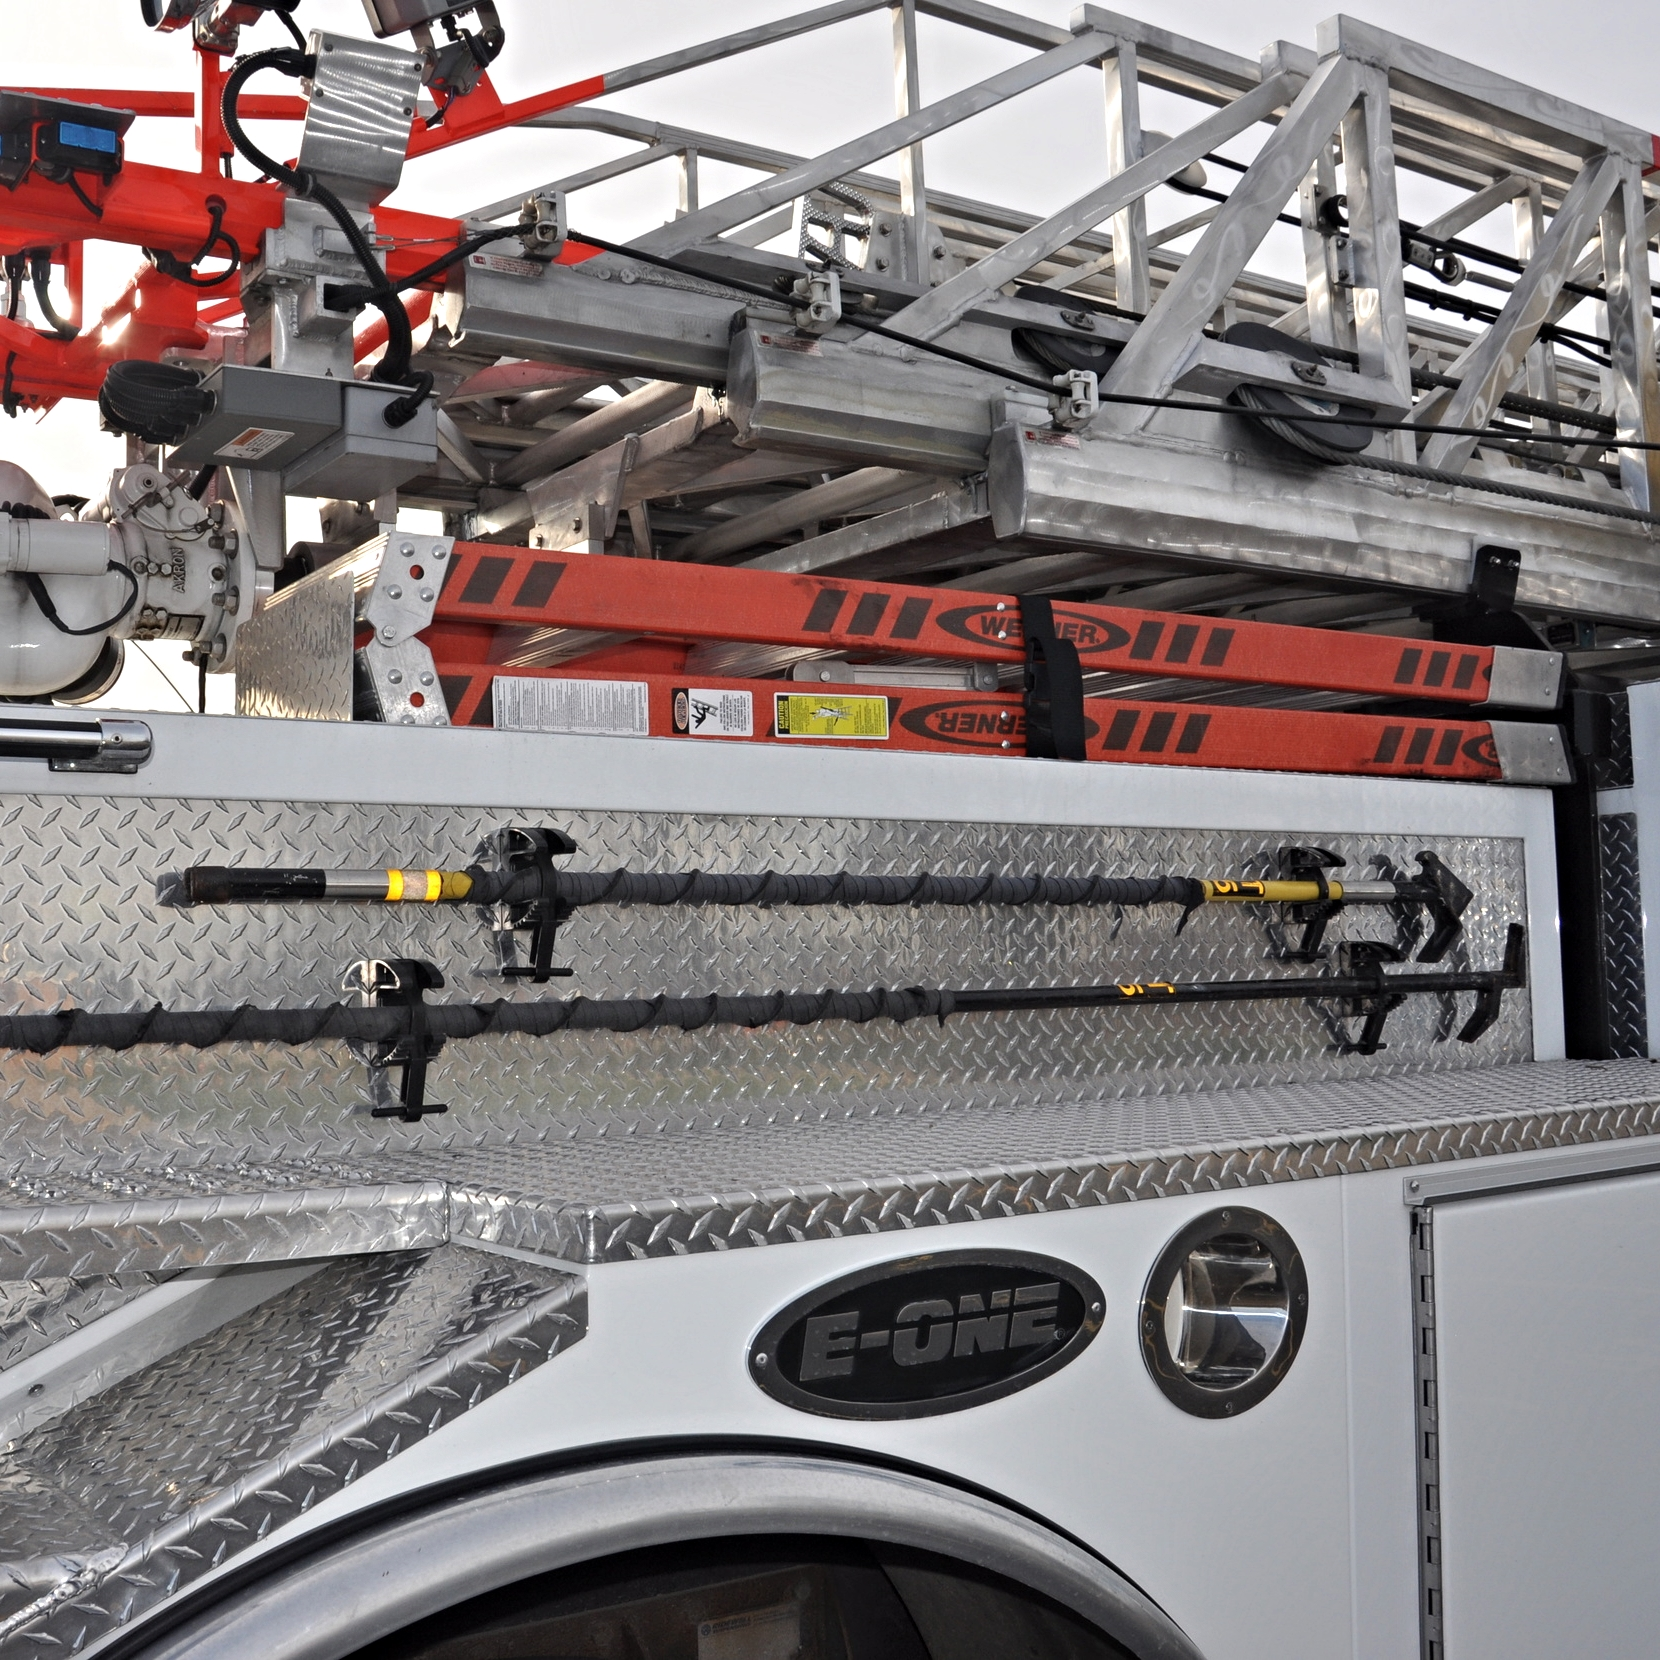 46 Right side tools and step ladders.JPG